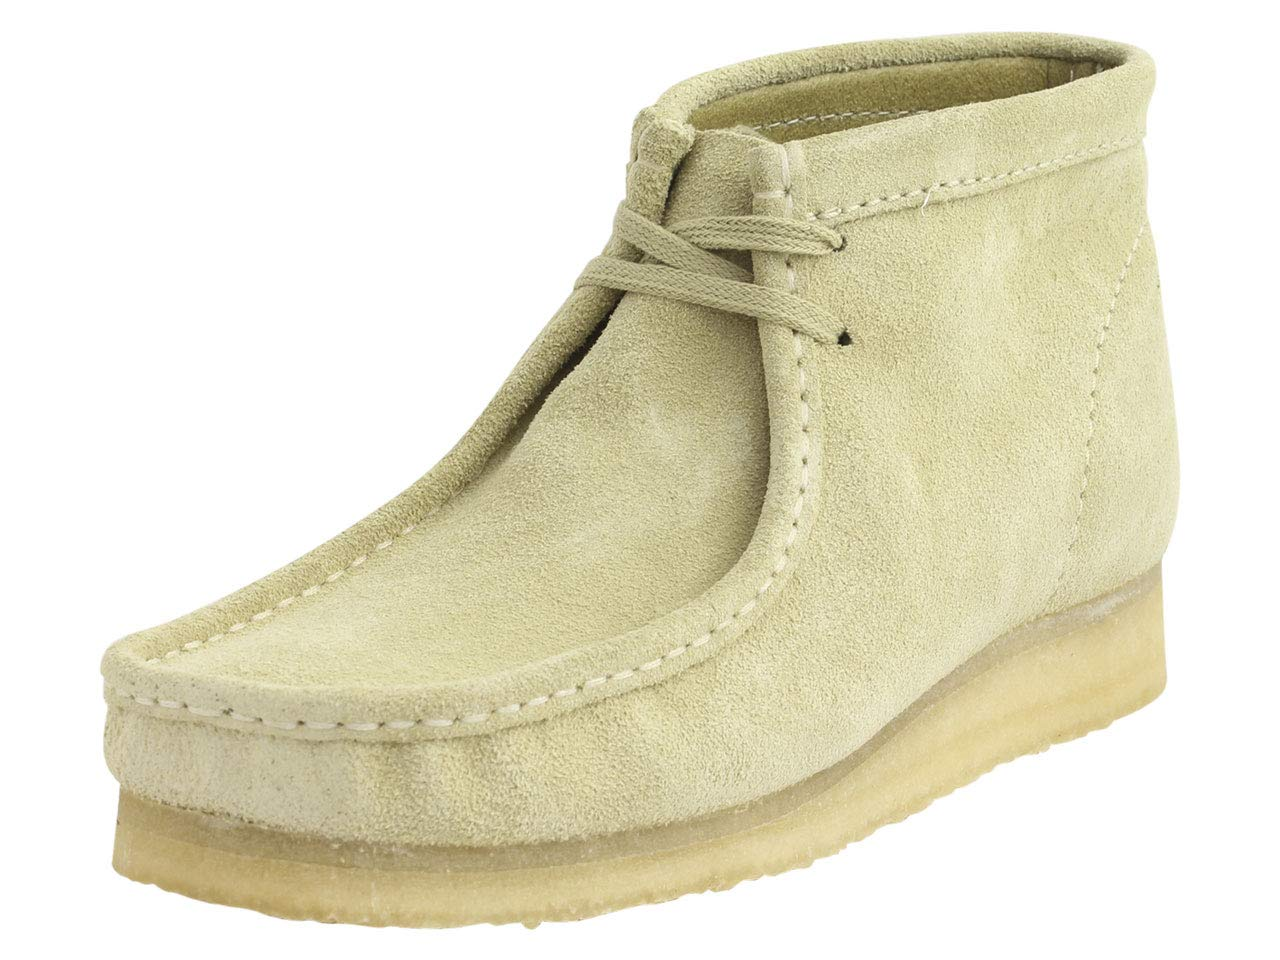 CLARKS Men's Wallabee Boot Fashion, Maple Suede, 100 M US